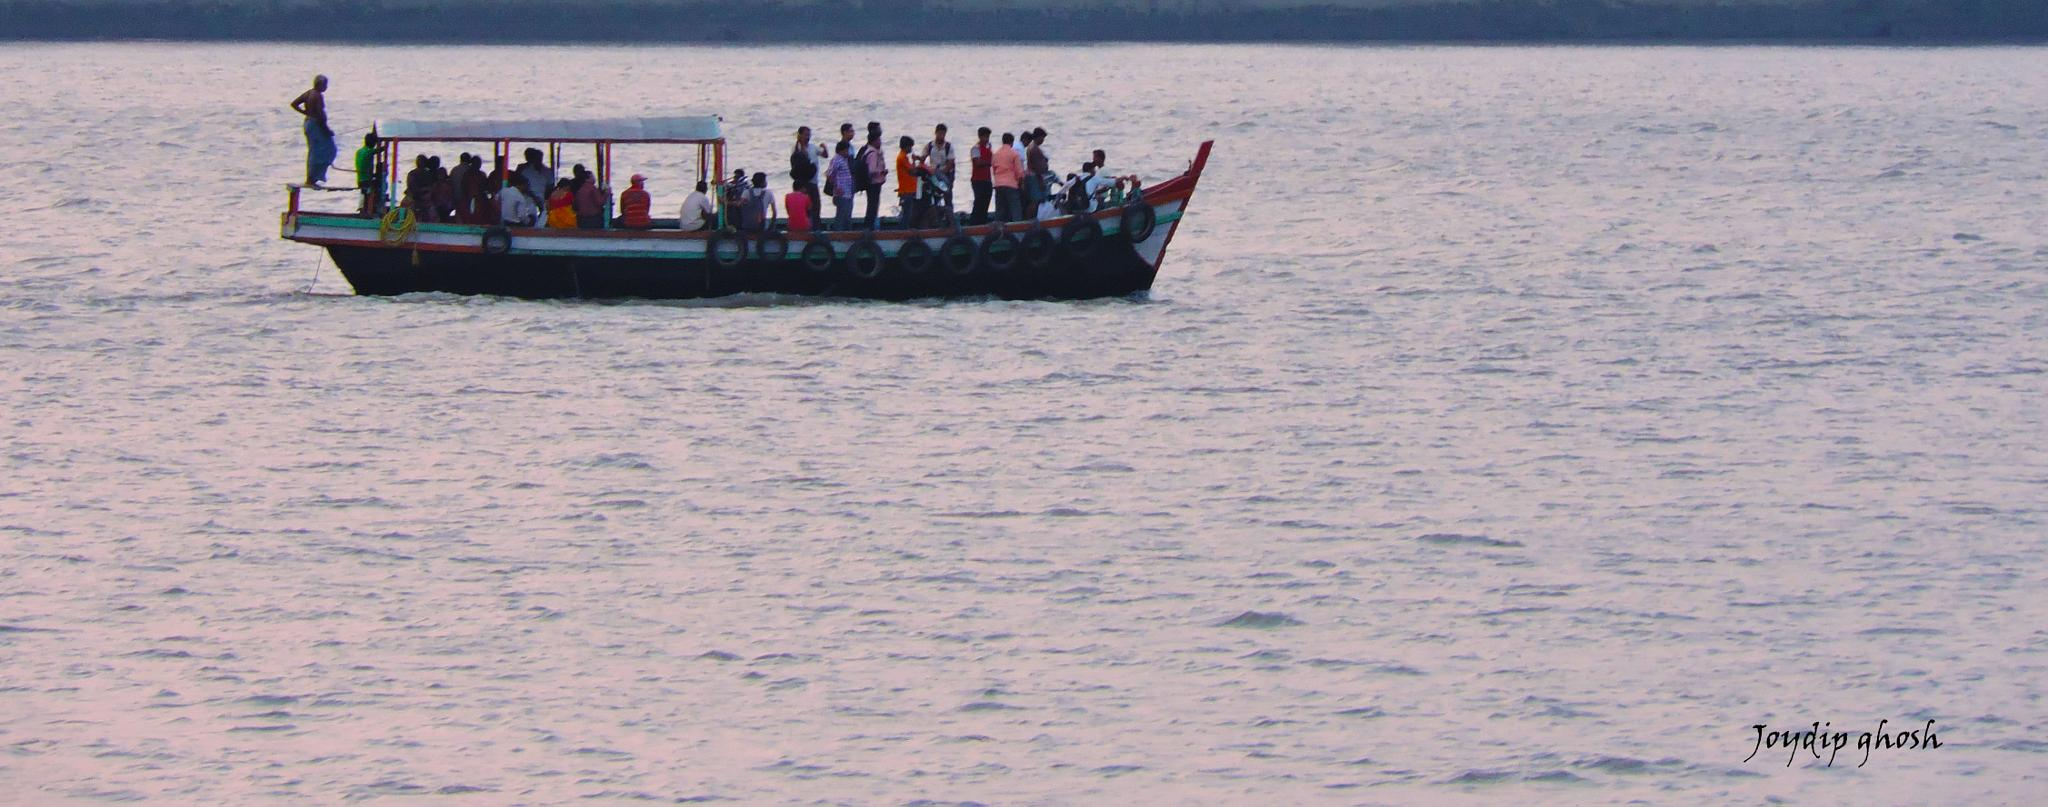 We may have all come on different ships, but we're in the same boat now  by Joydip Ghosh